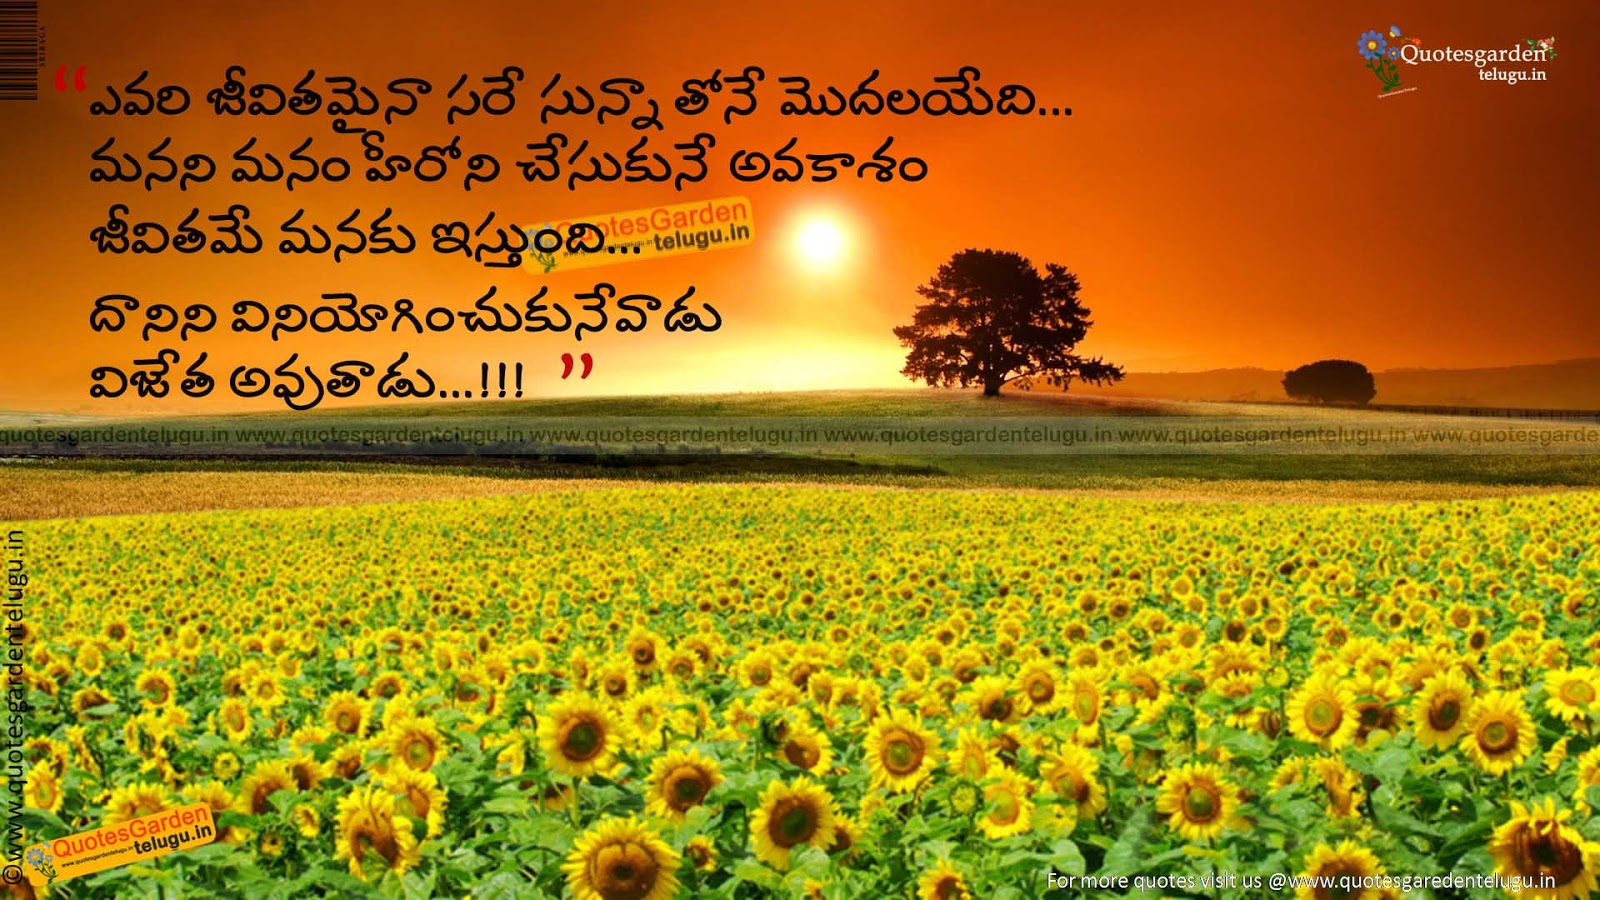 Best inspiring telugu quotes with hd wallpapers 1141 ...